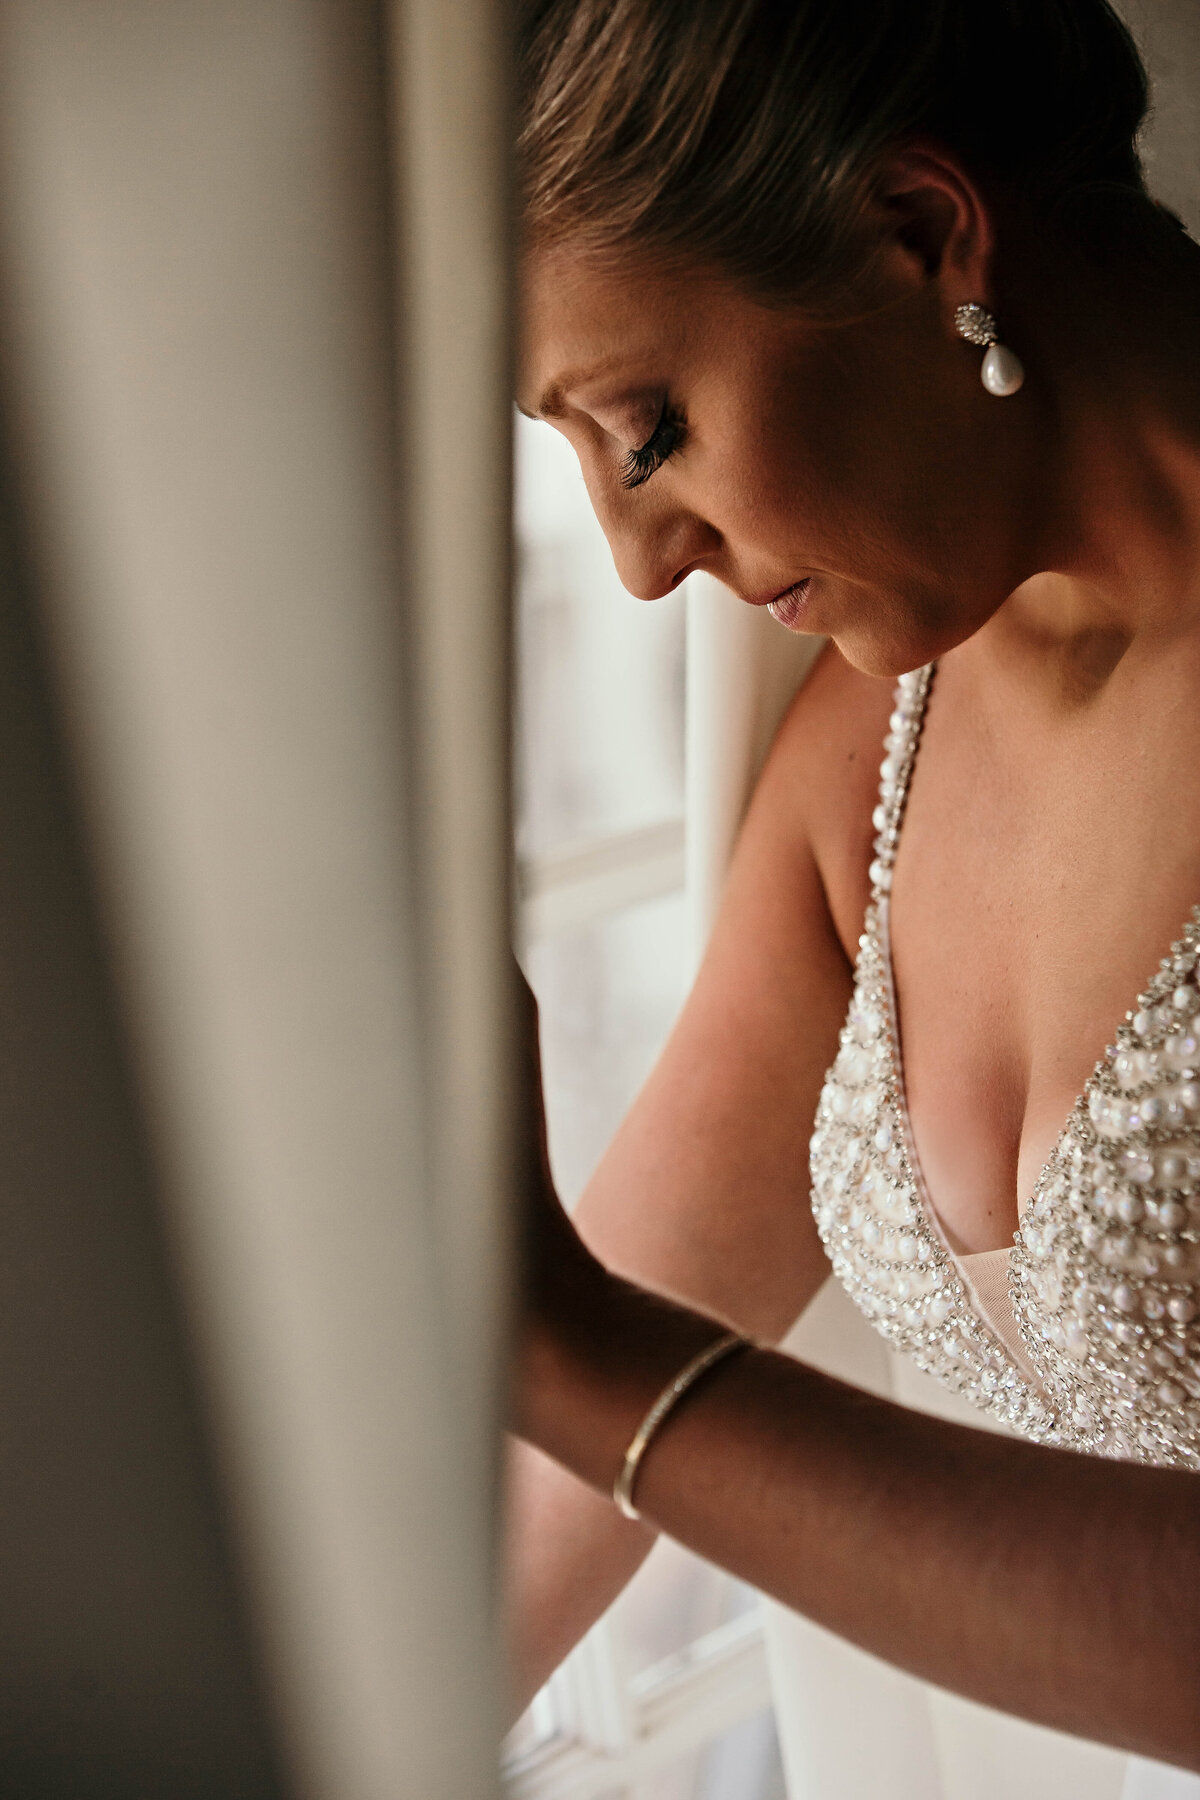 A photograph of the bride all ready for the wedding ceremony, pausing in a quiet moment as she stands by a window, looking down as the sunlight shows off her makeup and beaded dress bodice by Garry & Stacy Photography Co - Sarasota wedding photographer